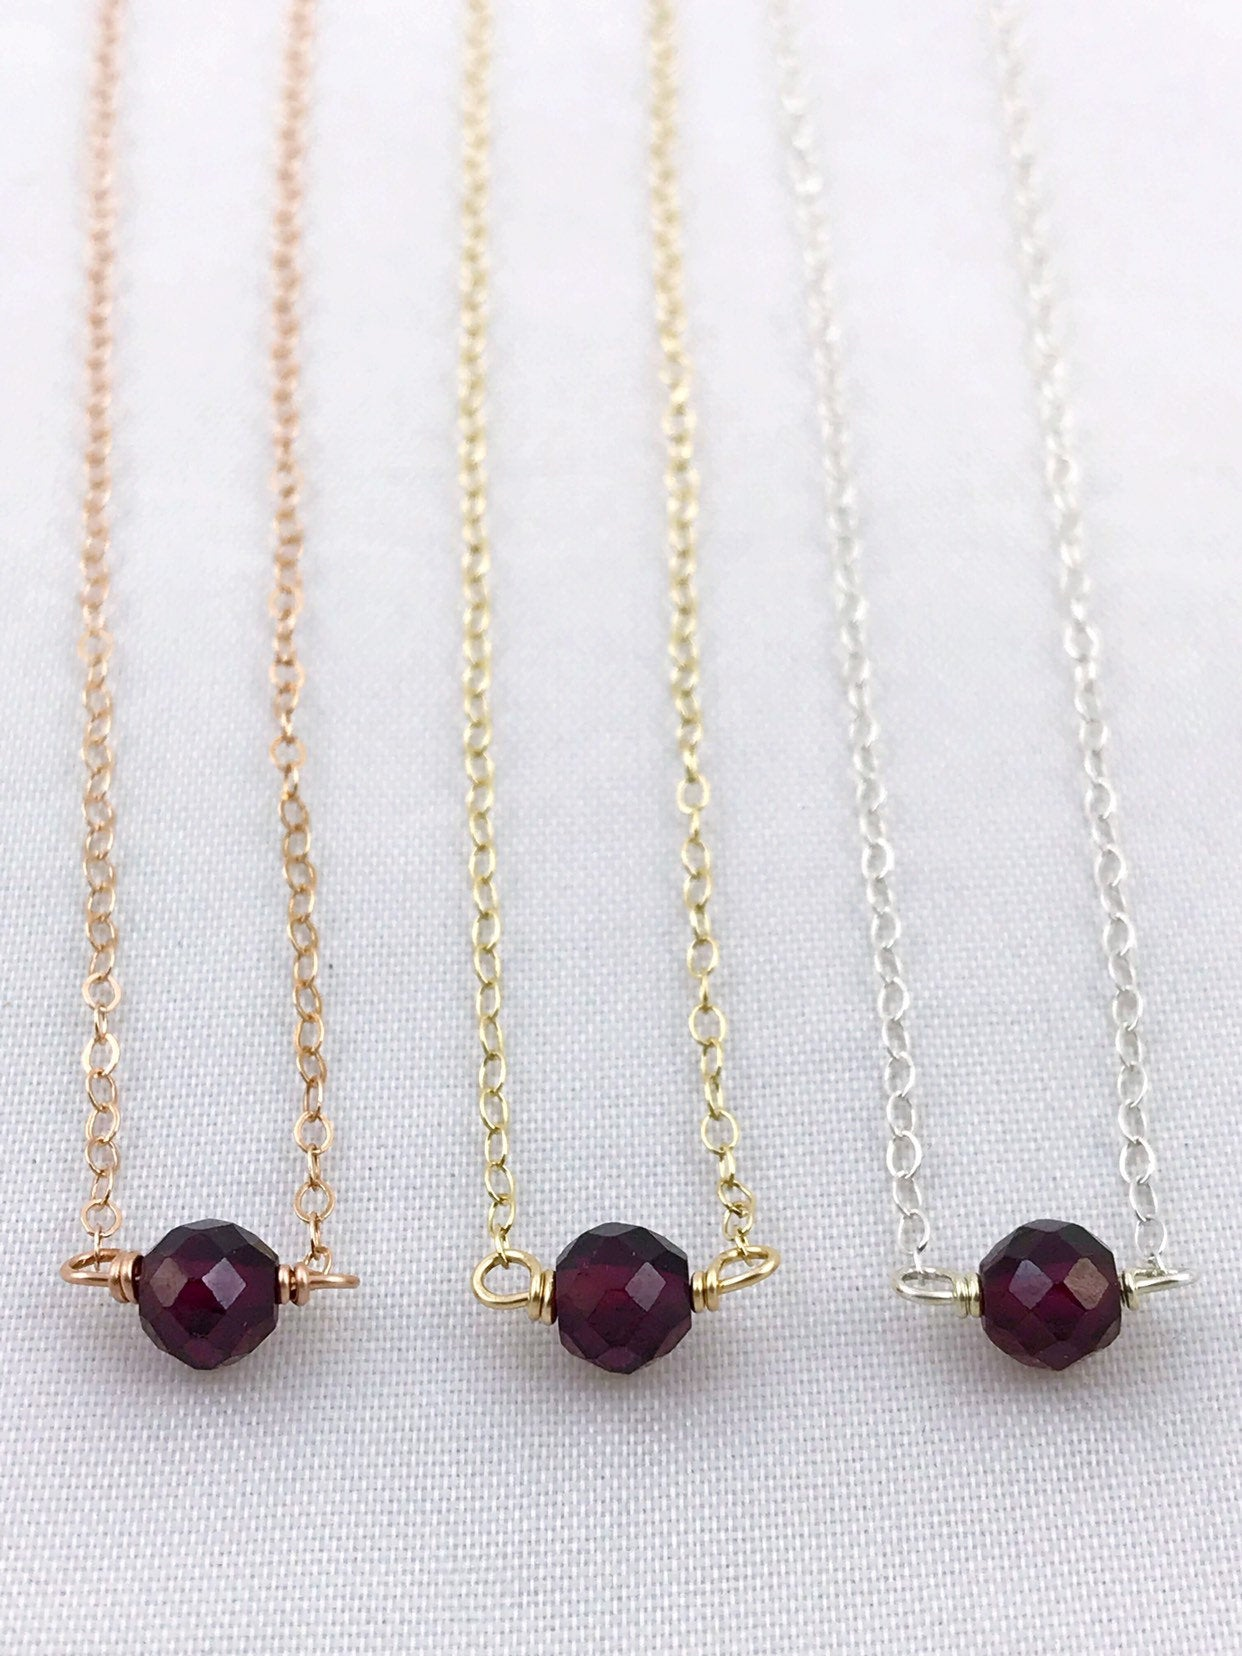 Tiny Amethyst Teardrop Gold Necklace Also in Rose Gold and Sterling Silver